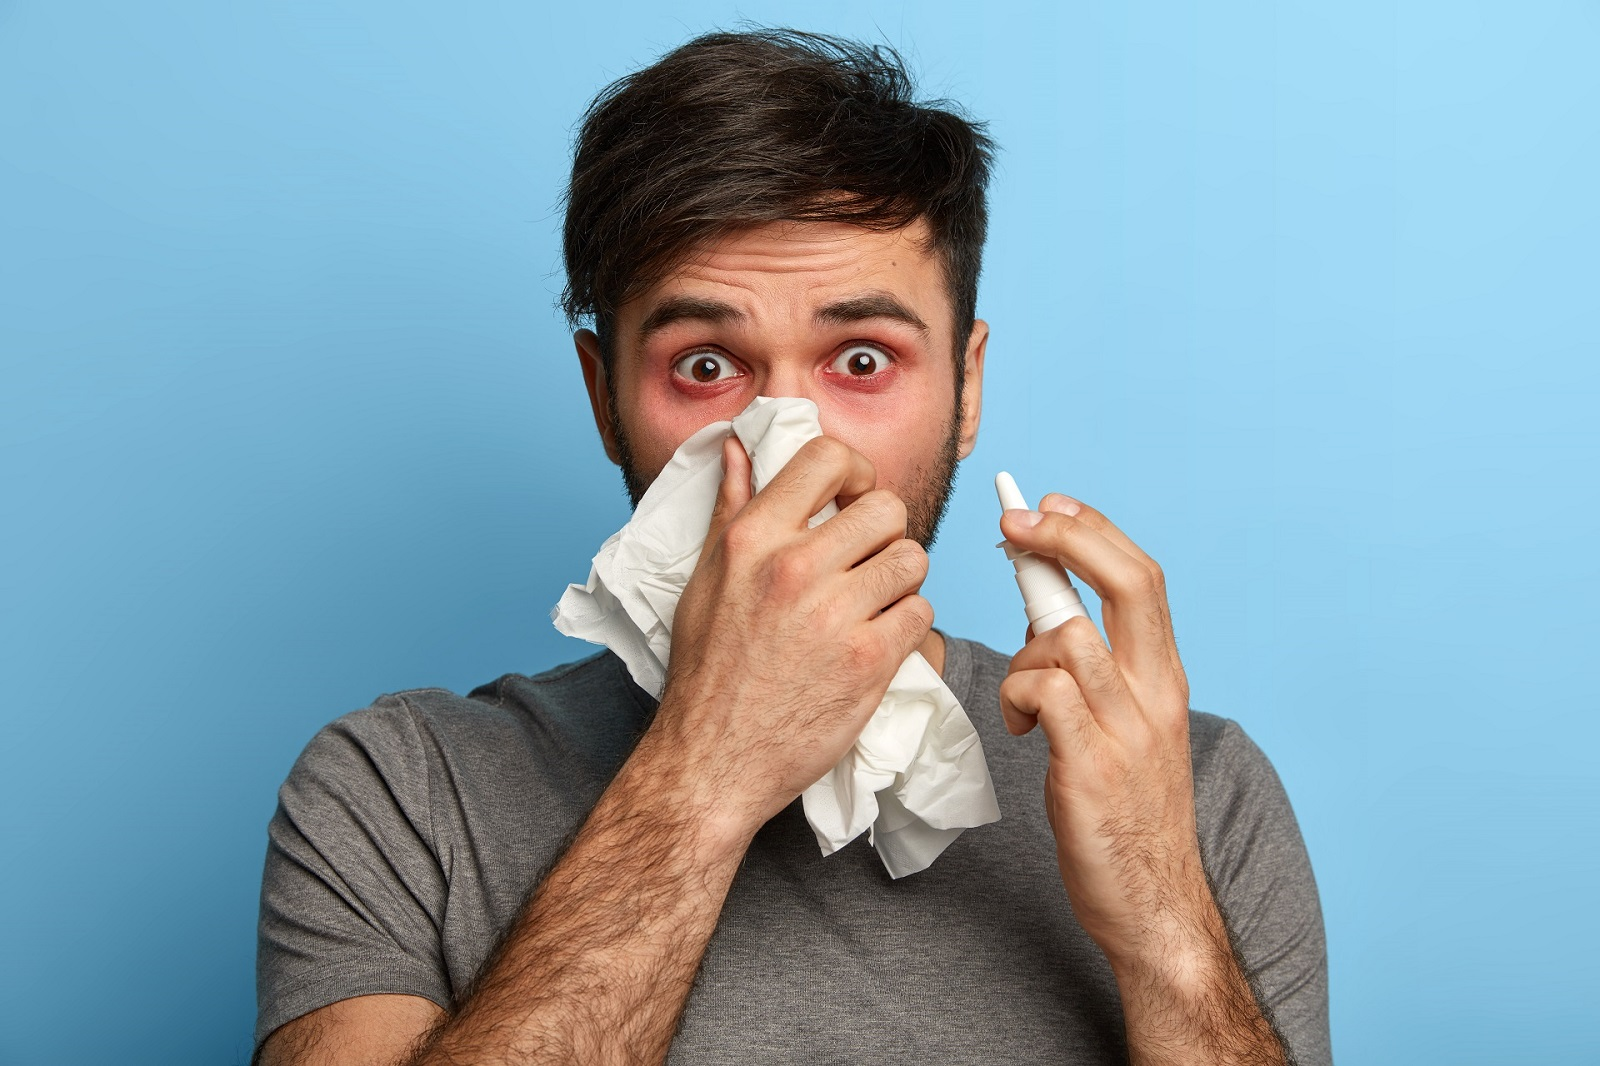 Man suffering from seasonal allergies due to a dusty home. Requires carpet cleaning in his home